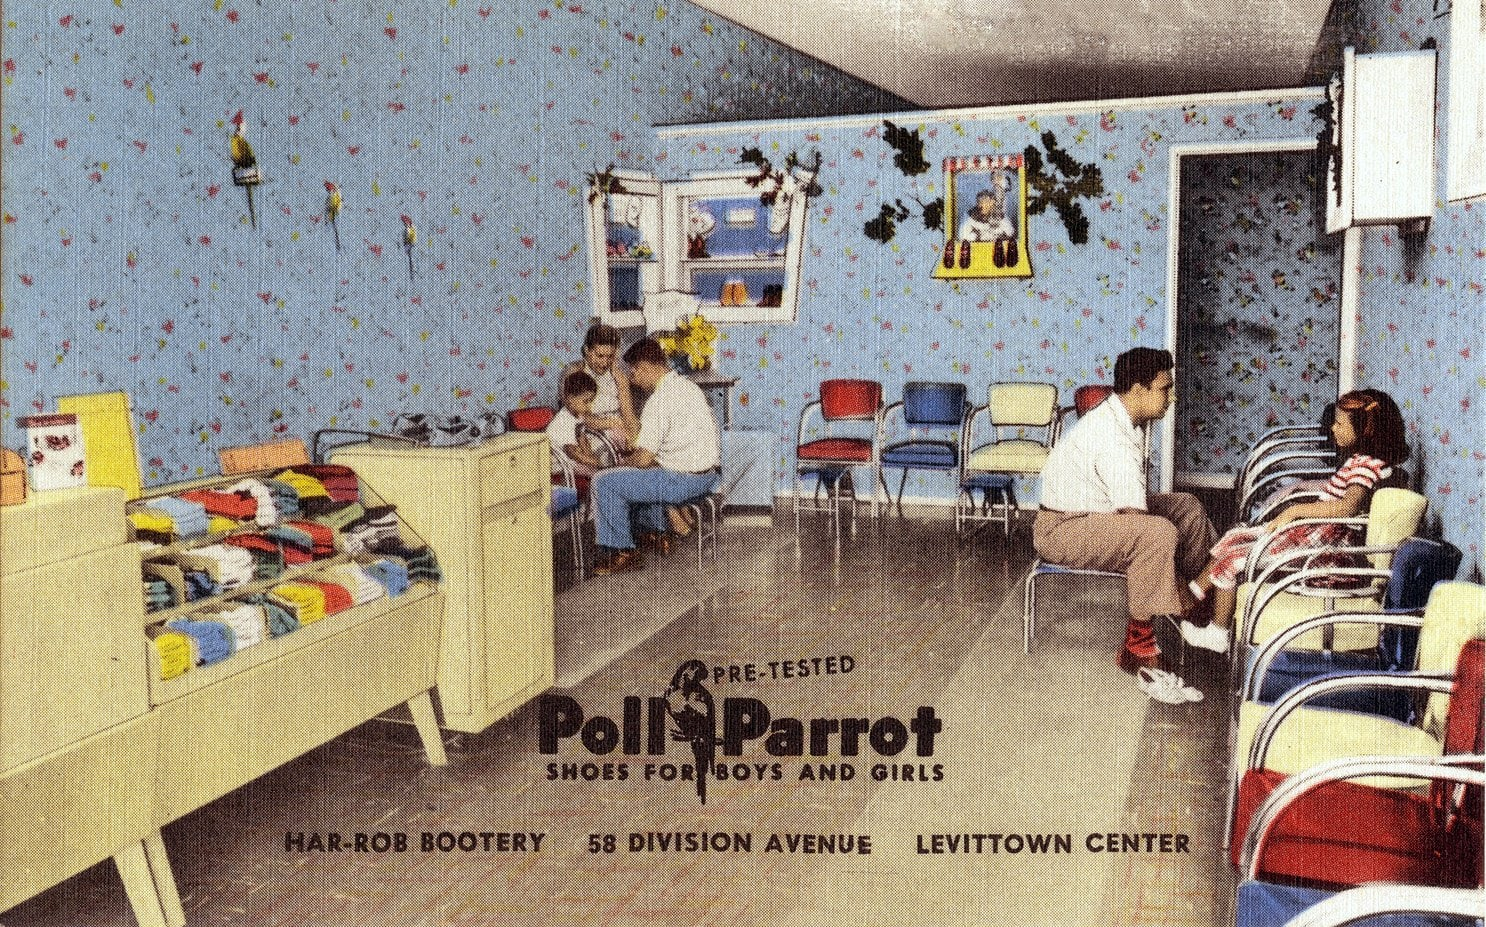 Poll Parrot shoes - Har-Rob Bootery - Levittown Pennsylvania (1940s)